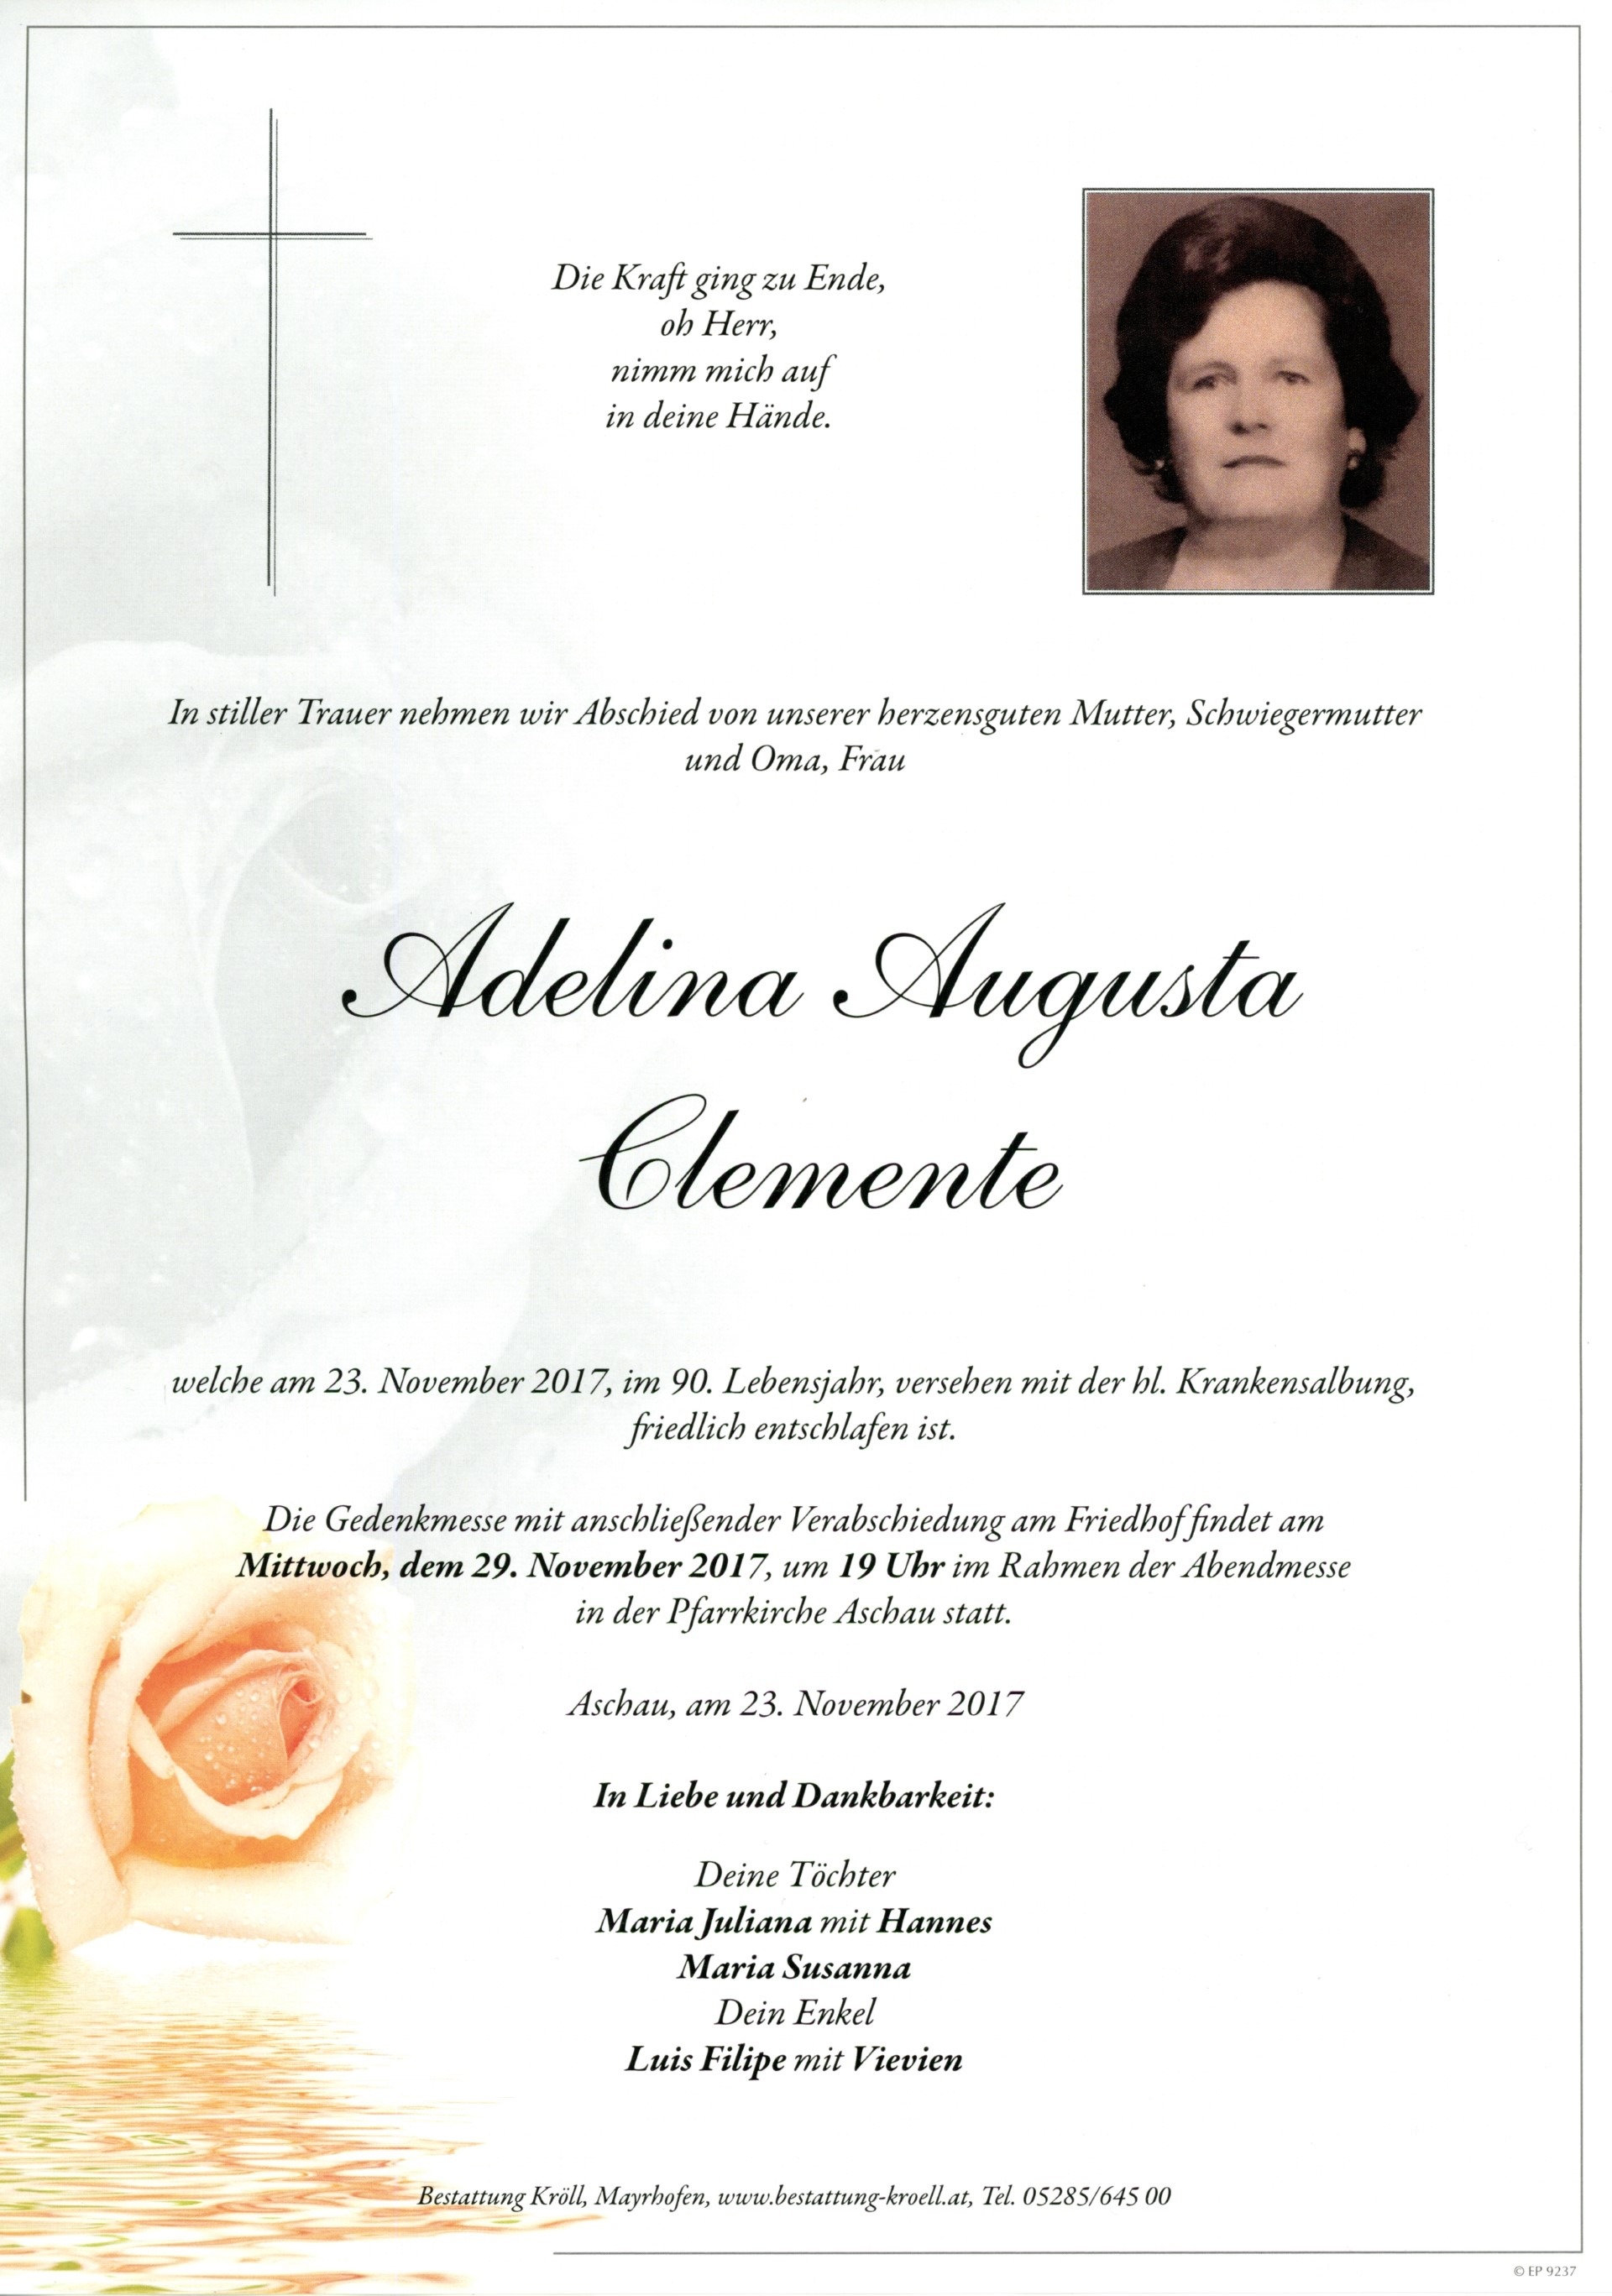 Adelina Augusta Clemente